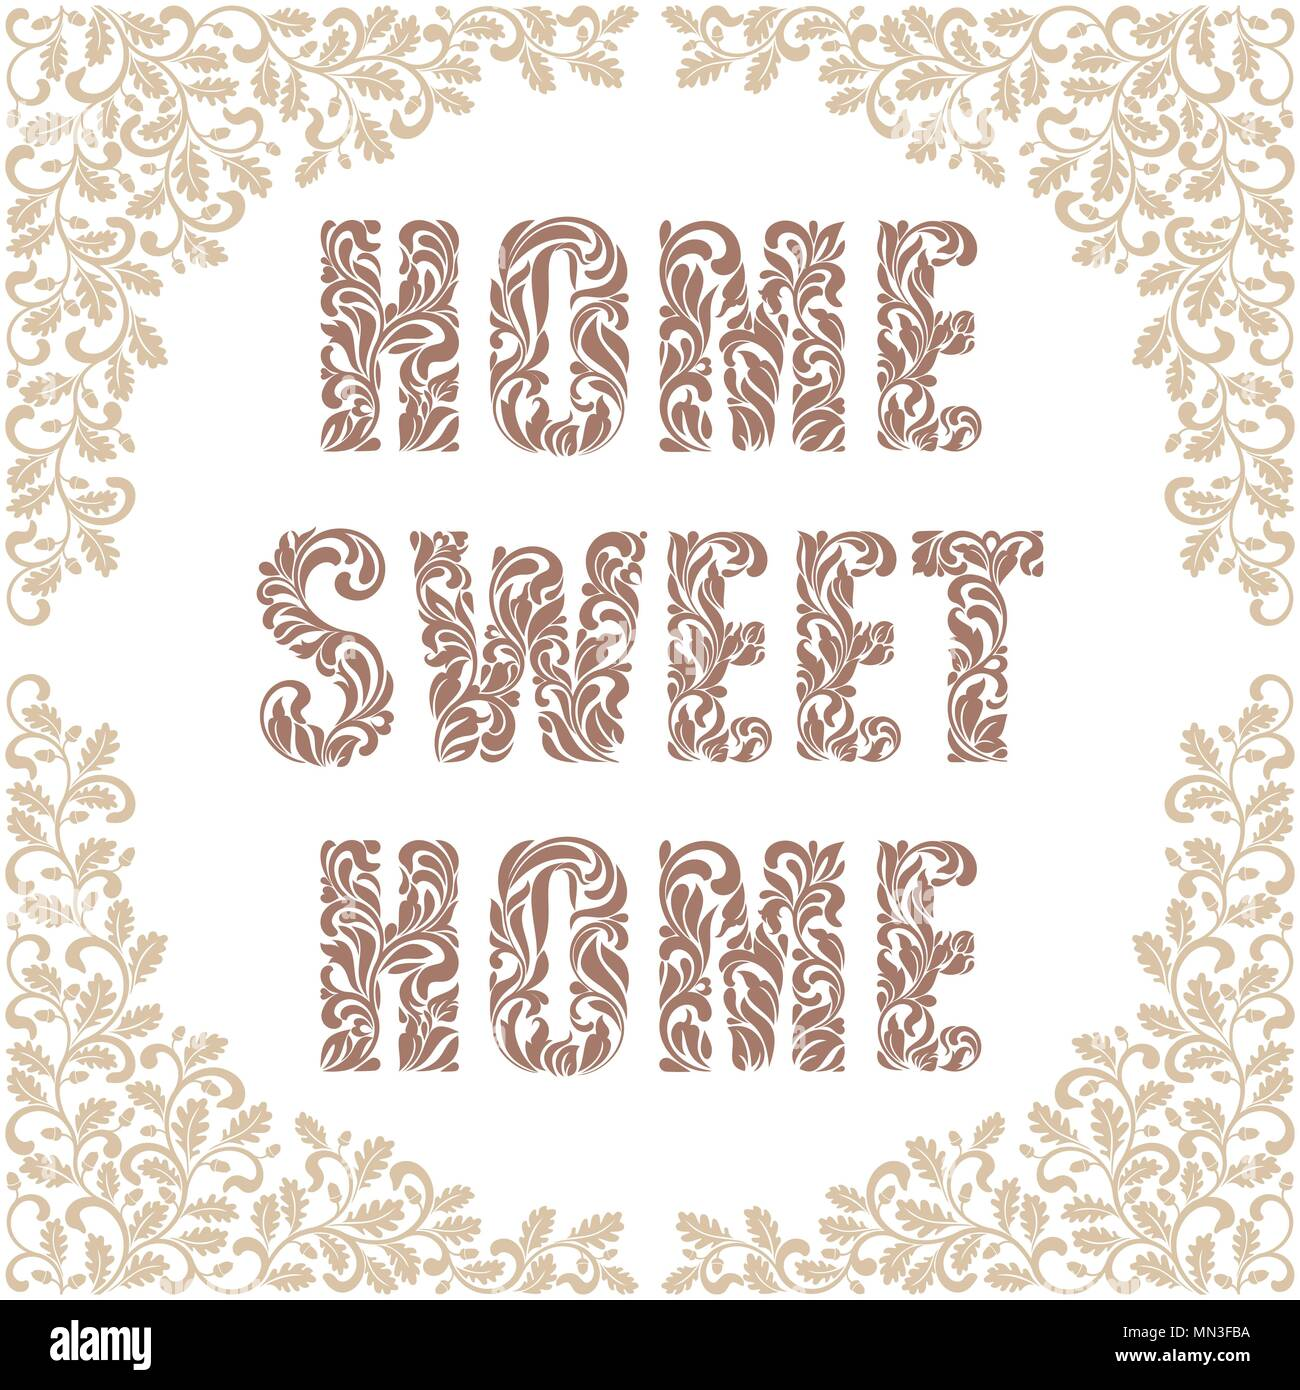 Home, sweet home. Decorative Font made in swirls and floral elements. Frame decorated twisted branches with oak leaves and acorns. Vintage style - Stock Vector